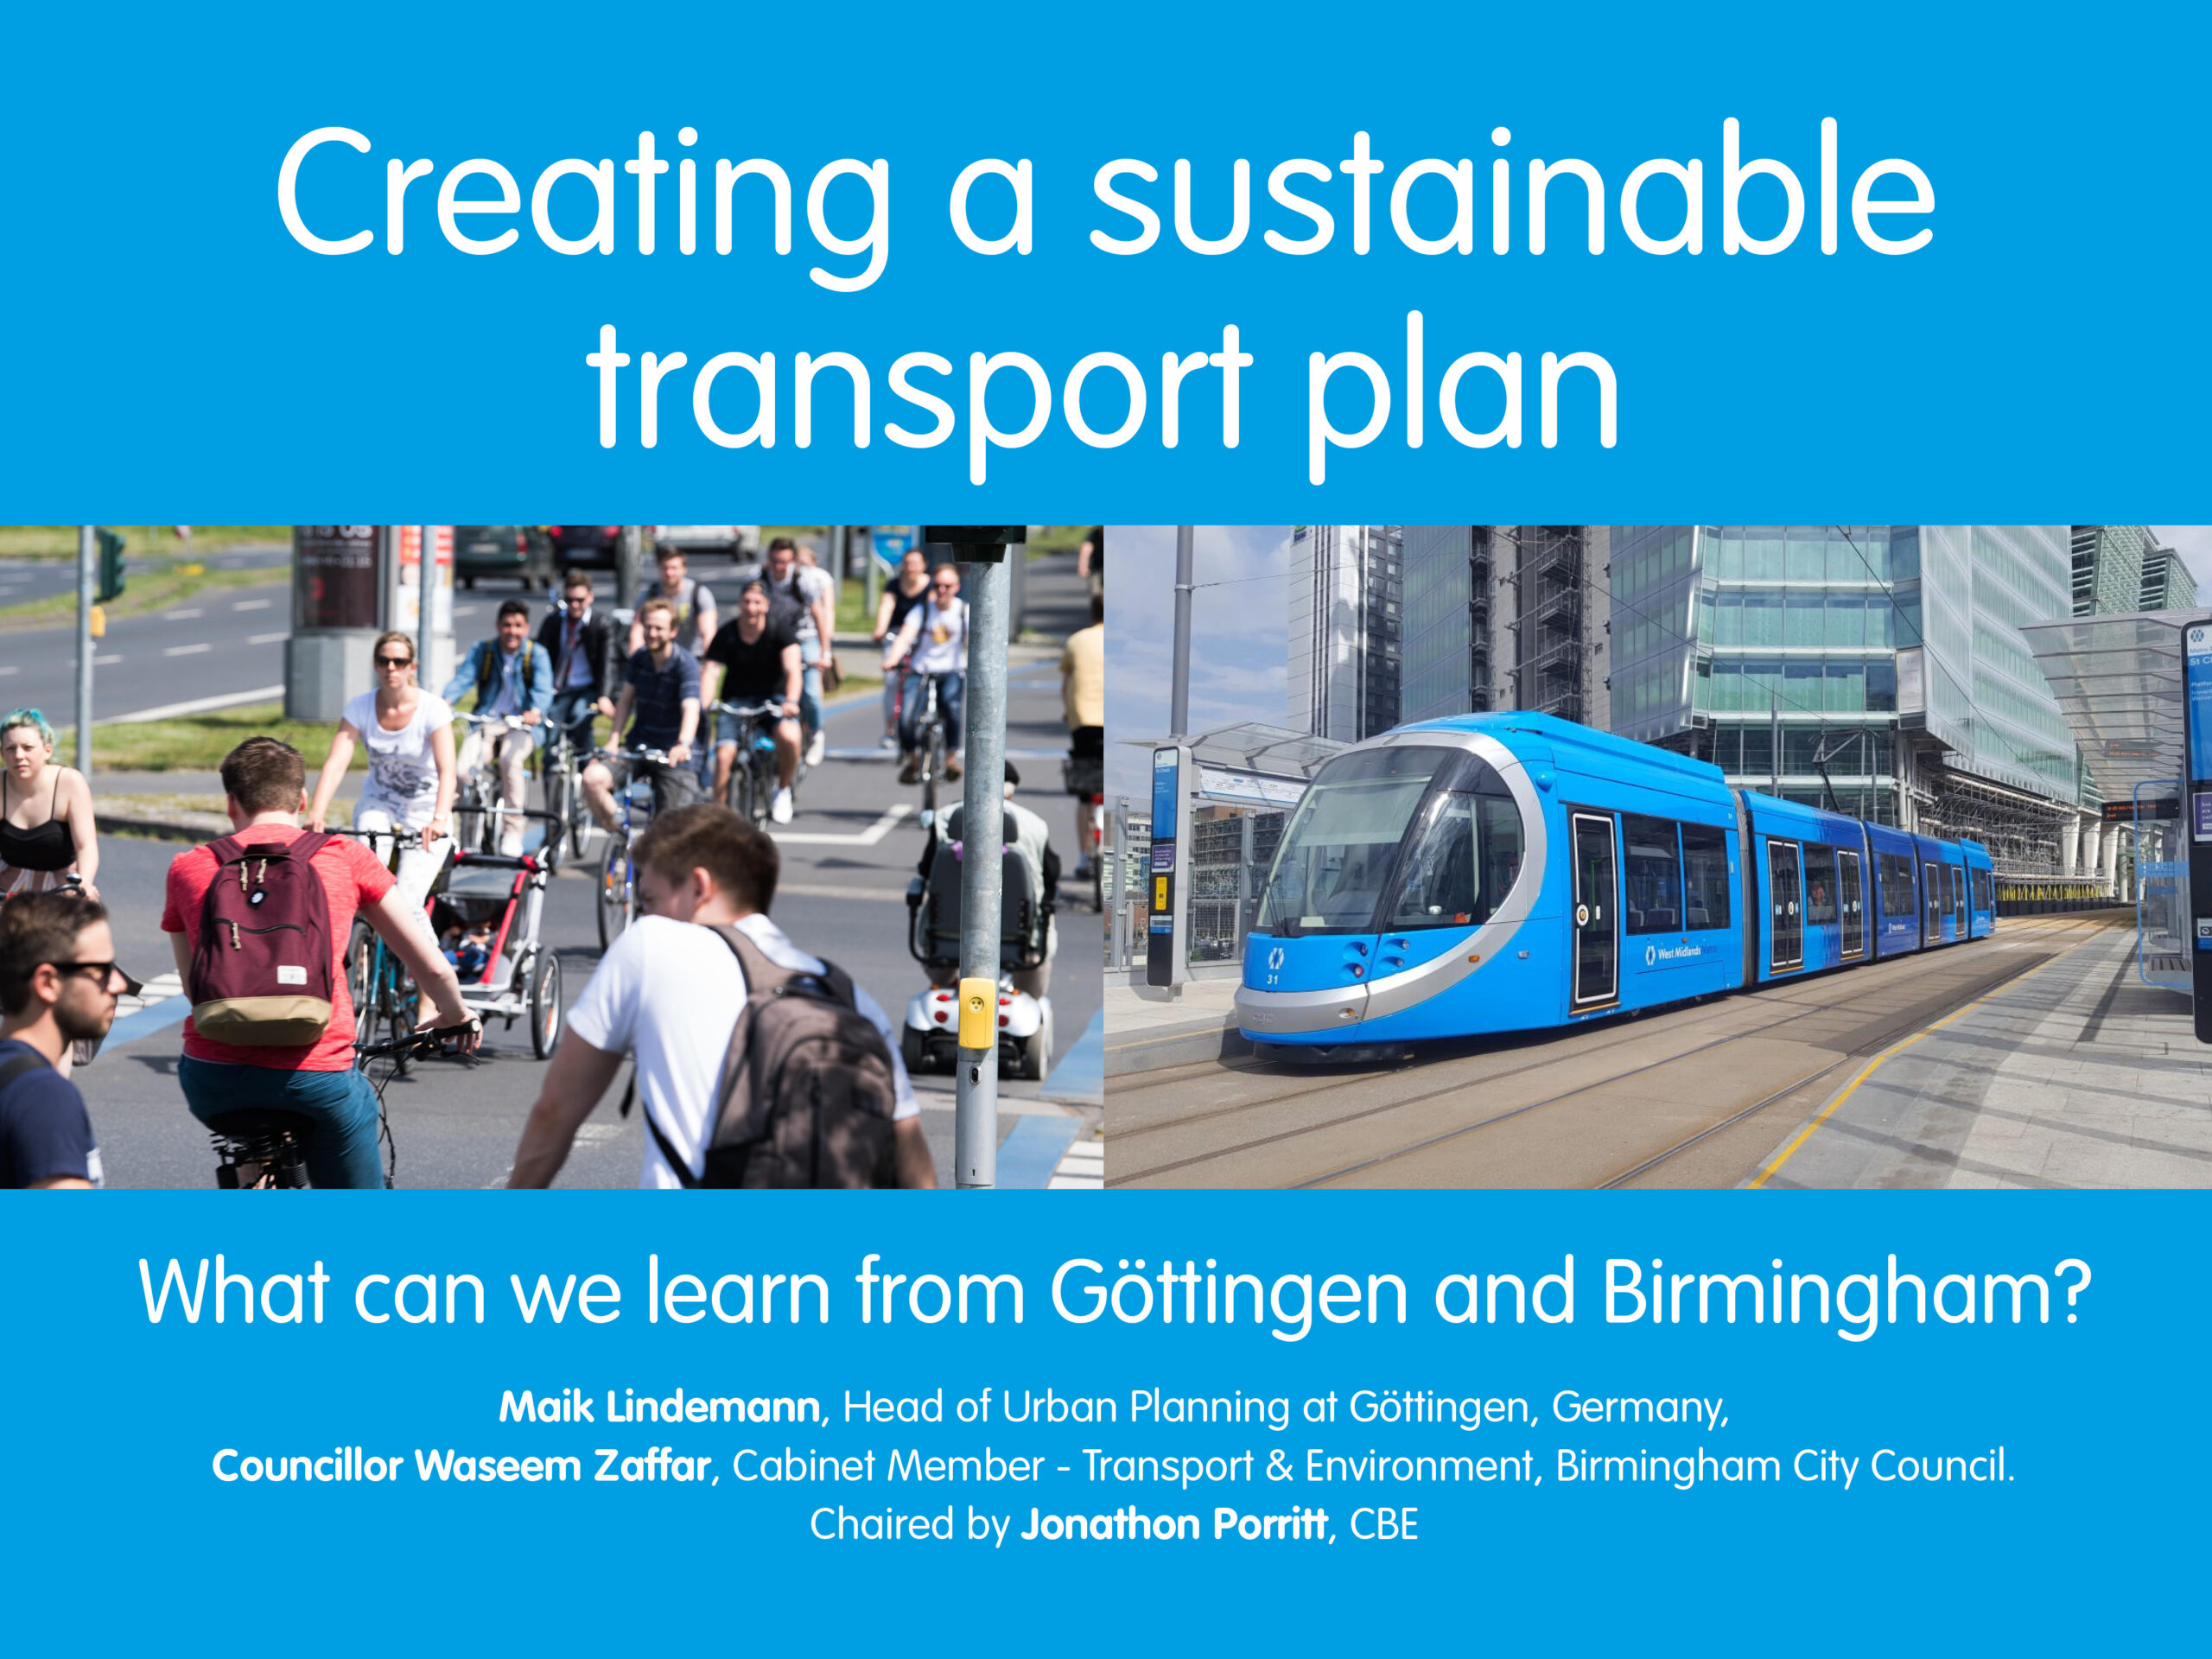 Creating a sustainable transport plan